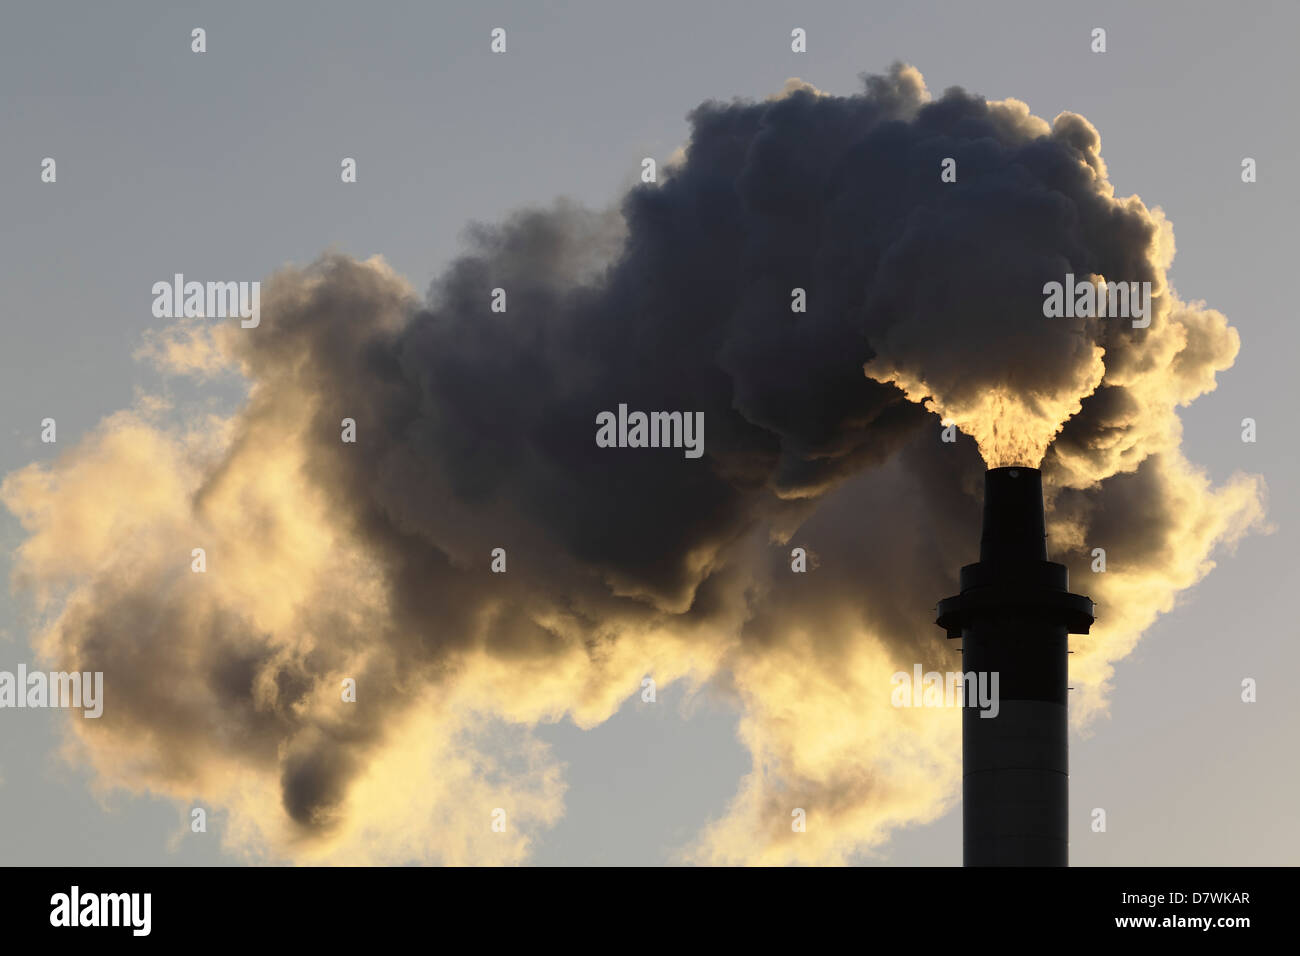 Emissions from a chimney, Scotland UK - Stock Image